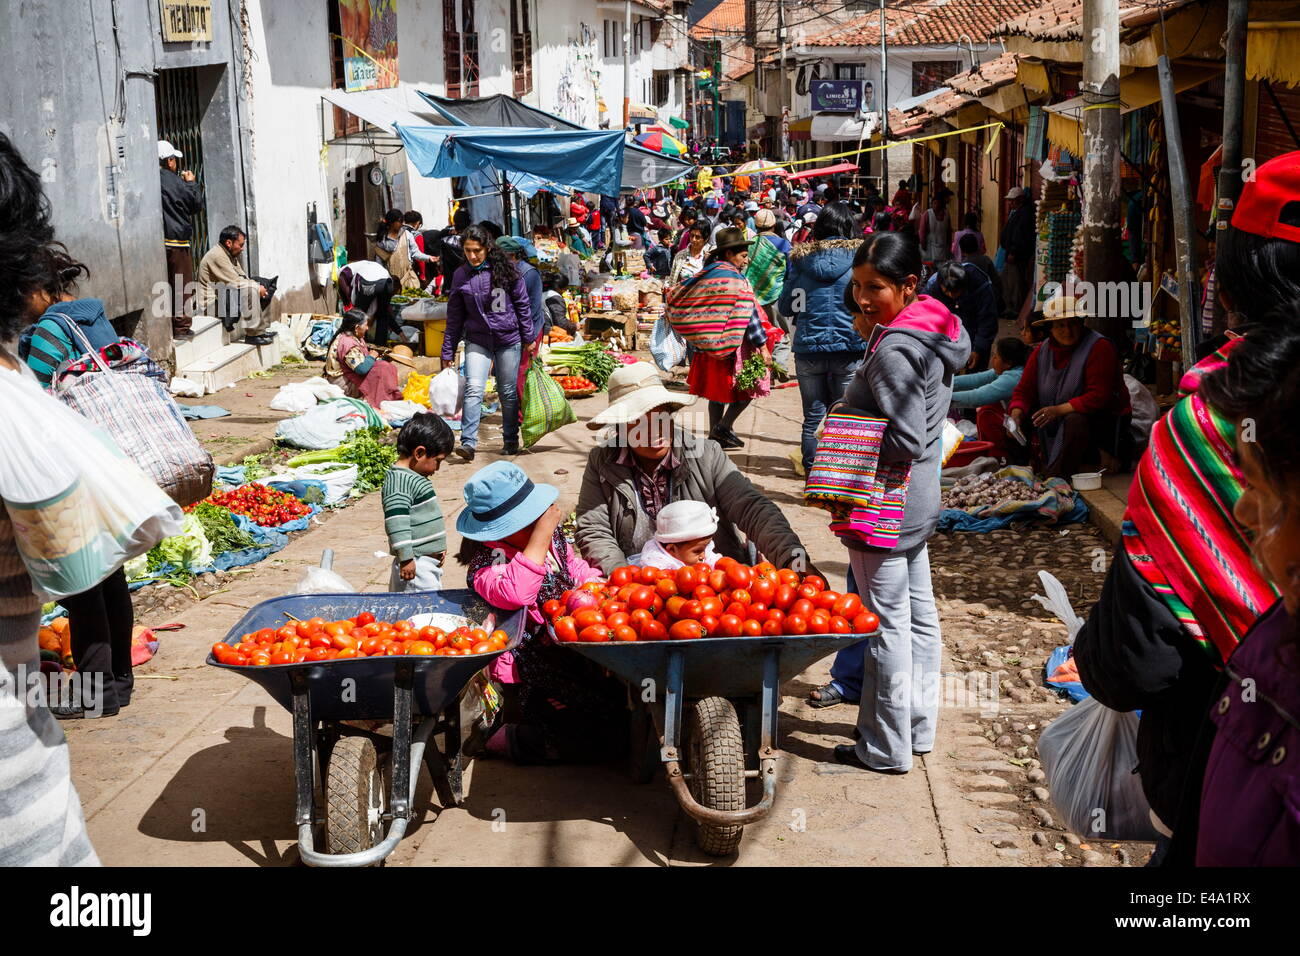 Outdoor vegetable and fruit market, Cuzco, Peru, South America - Stock Image